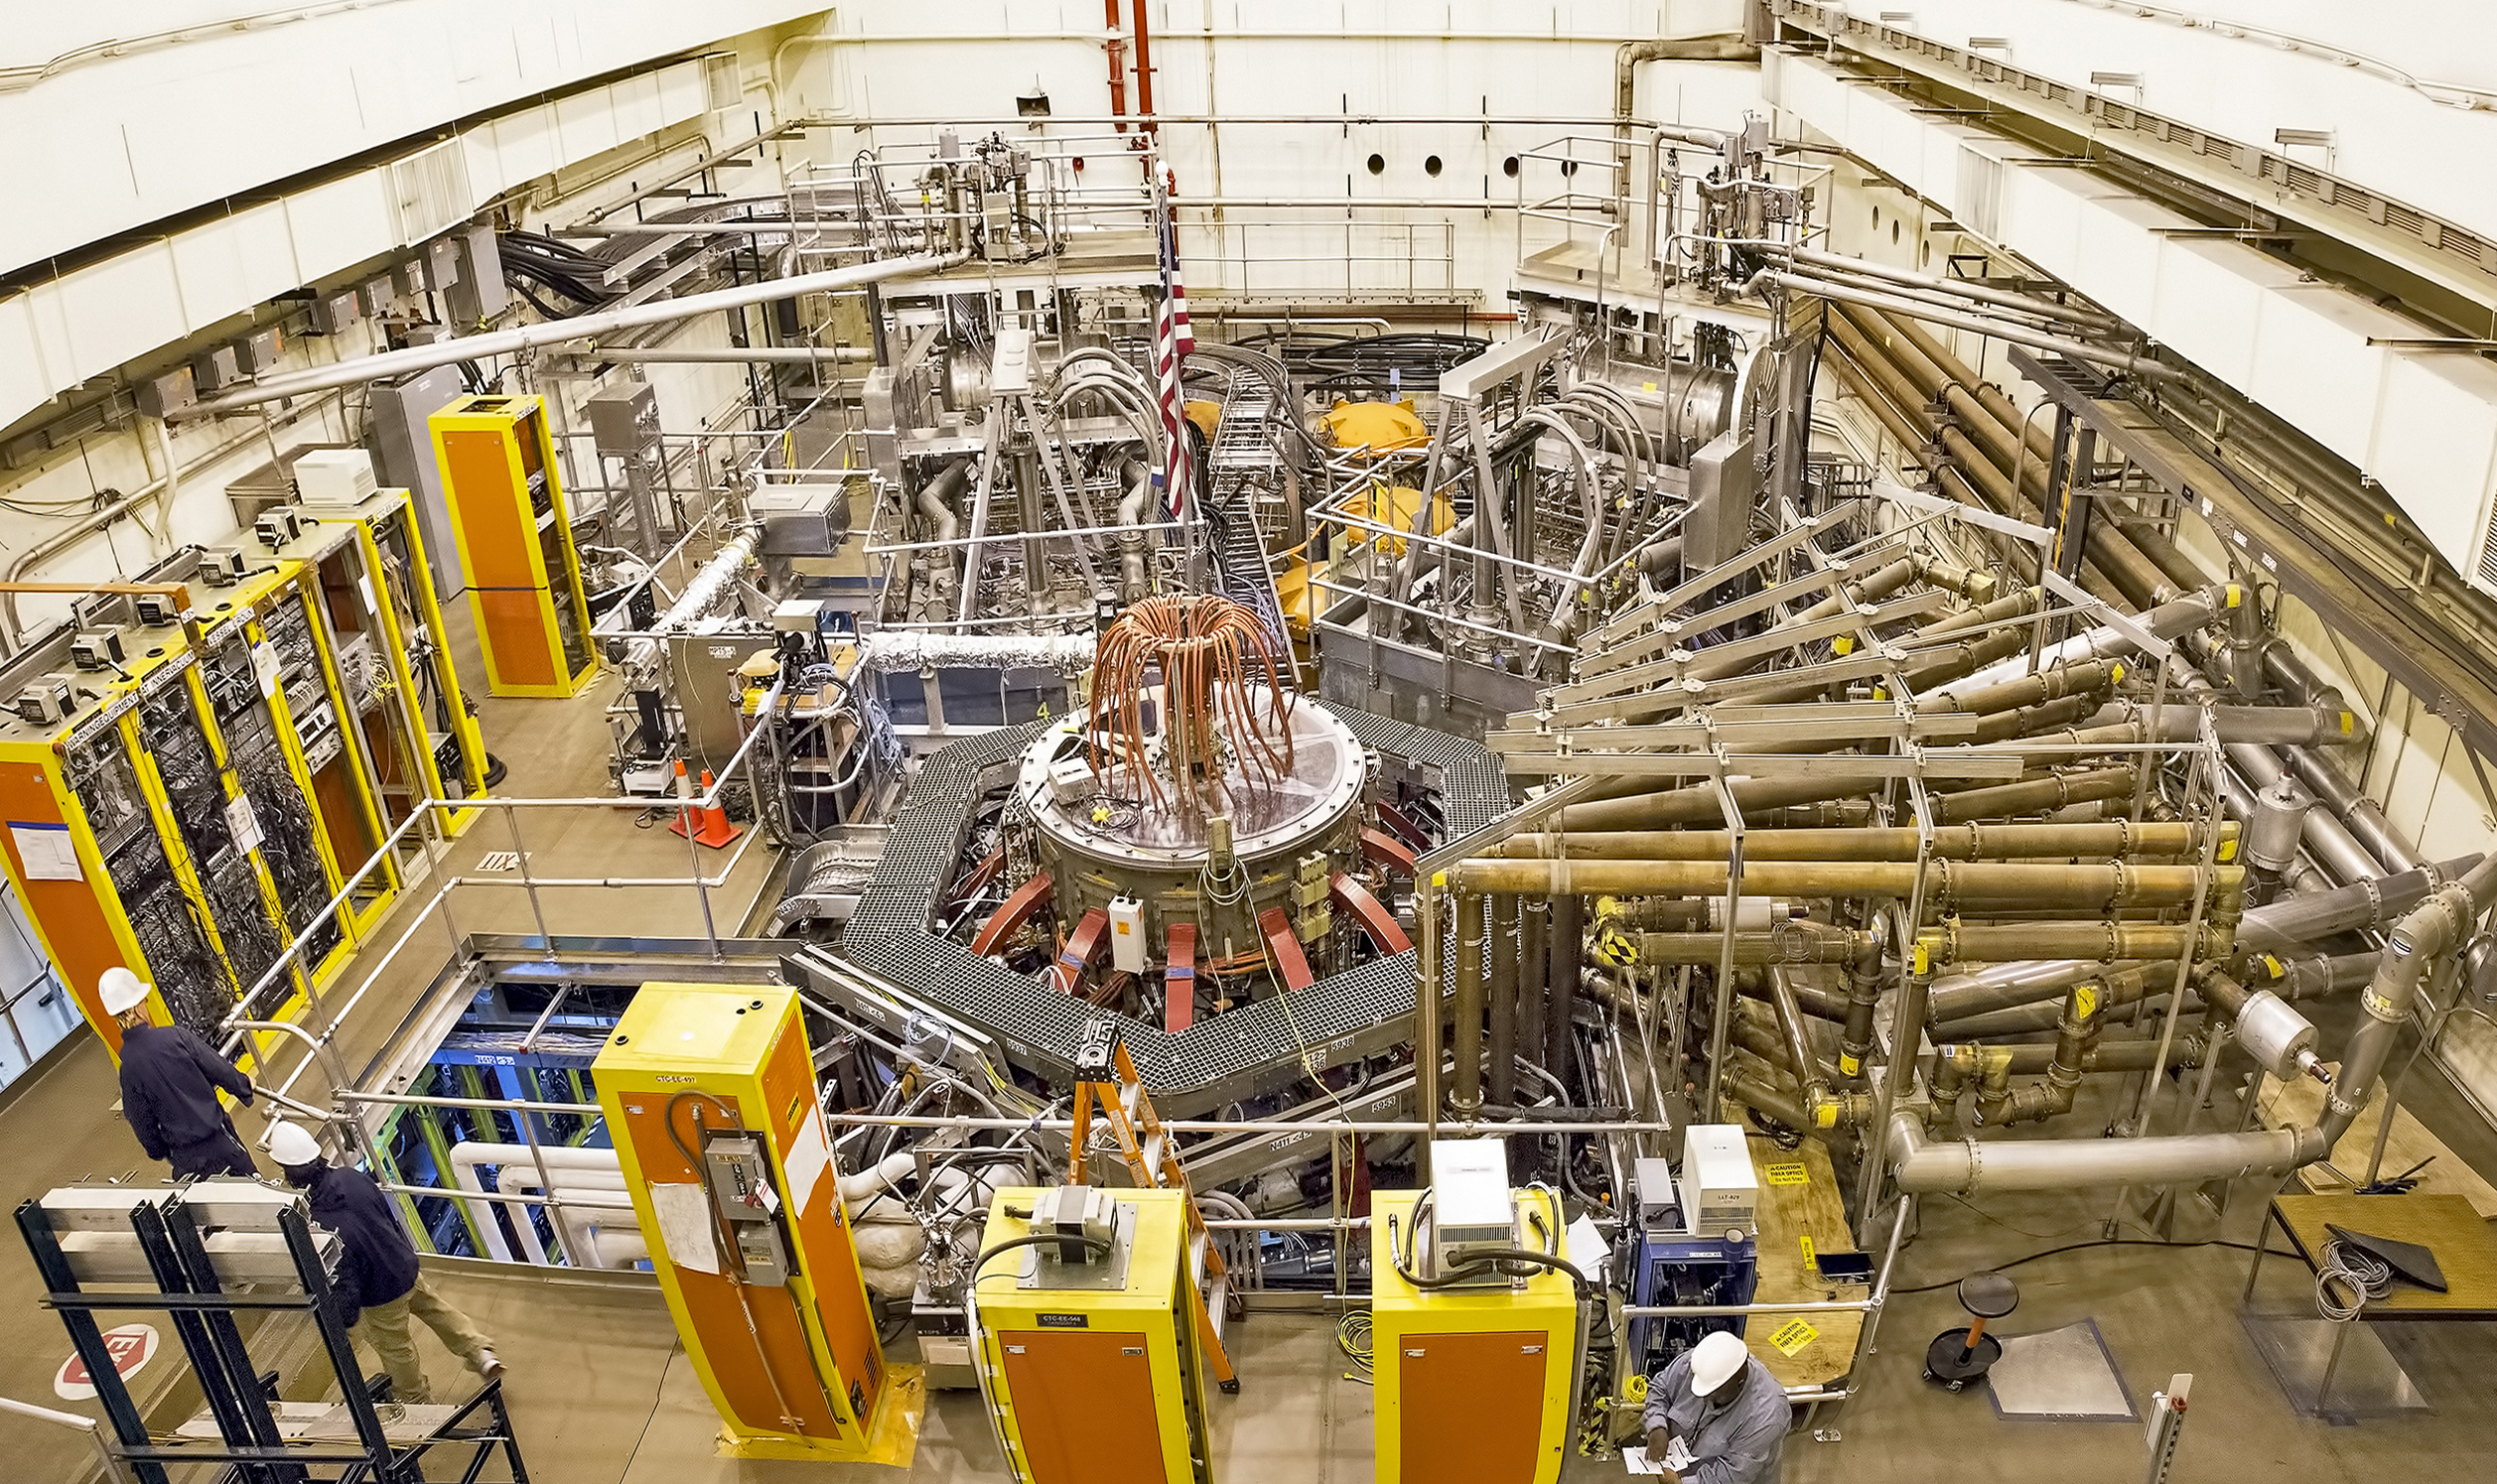 Test cell of the NSTX-U with tokamak in the center (Credit: Princeton Plasma Physics Laboratory)